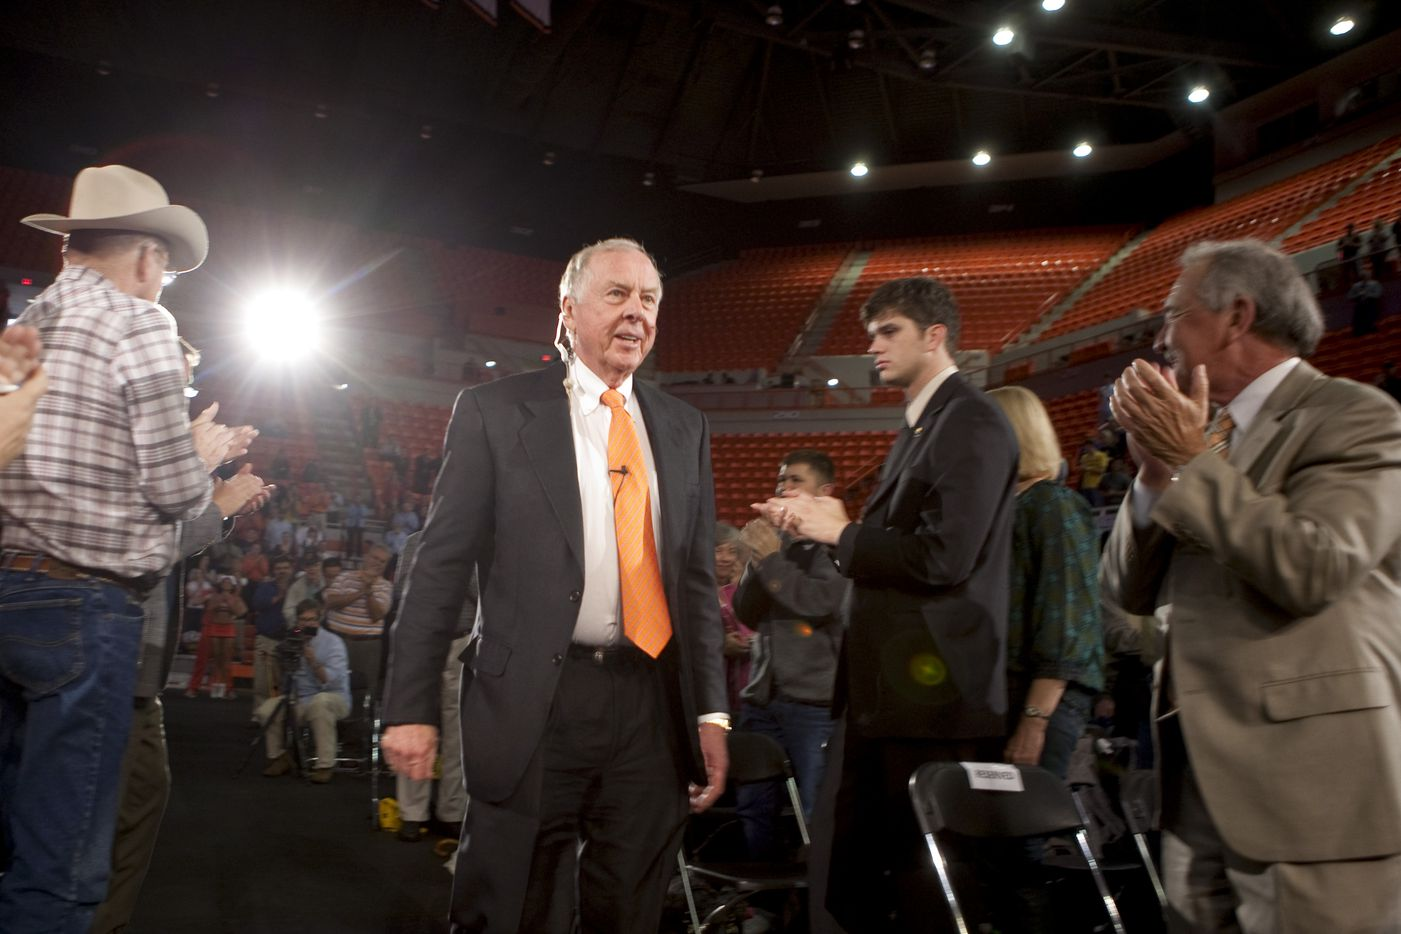 Pickens, center, arrives for a town hall meeting at Oklahoma State University's Gallagher-Iba Arena in Stillwater in 2009. Pickens was promoting the Pickens Plan, a grass-roots alliance that promotes the use of wind and natural gas power to reduce dependence on foreign oil.